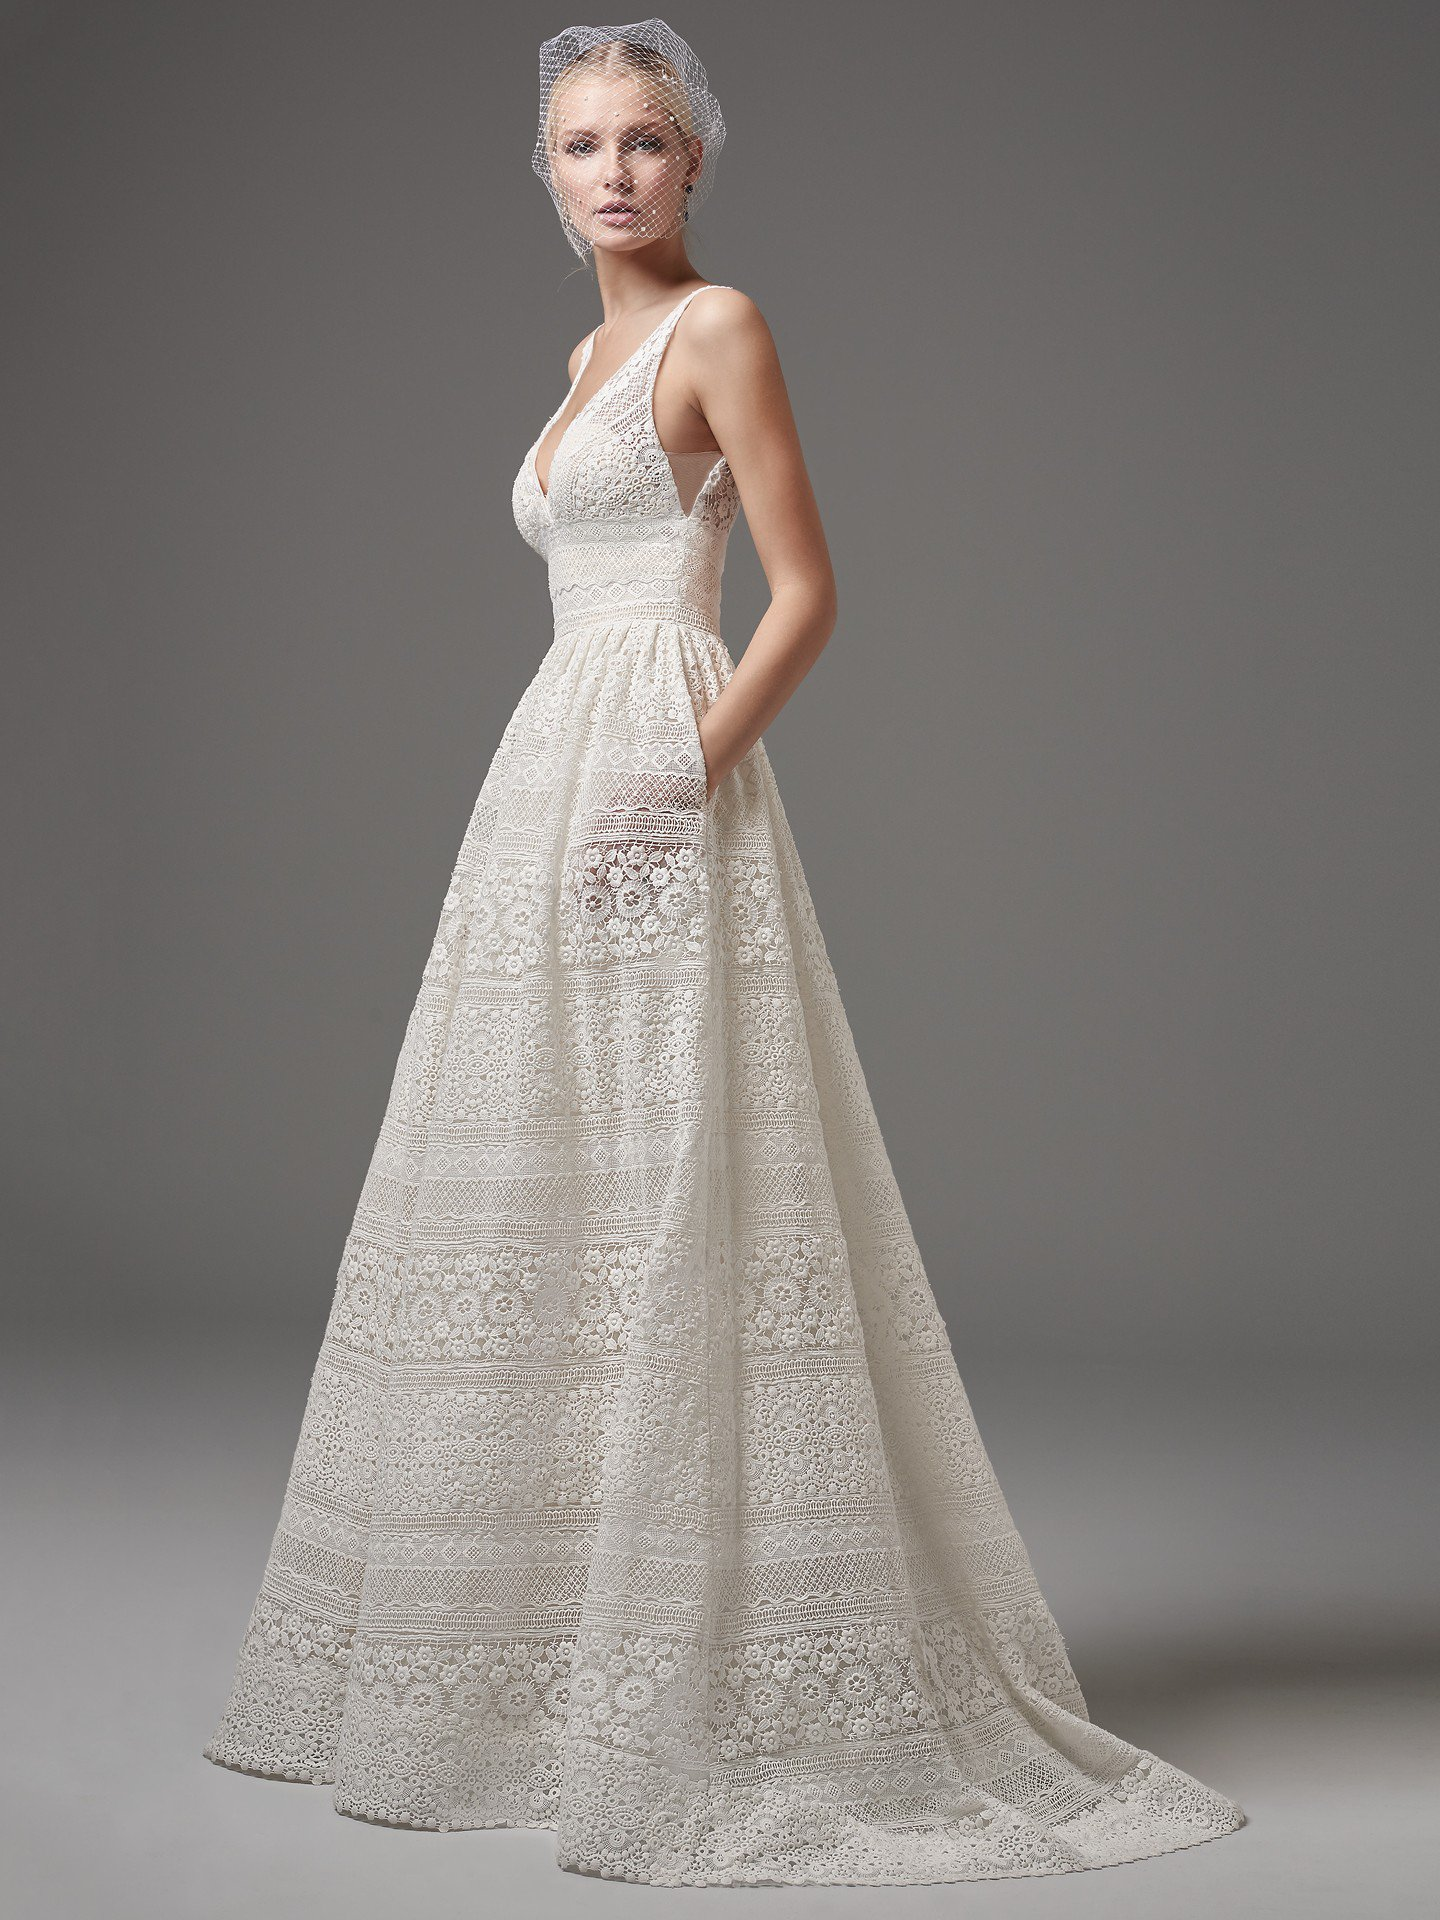 EVAN This chic, boho-inspired A-line features sheer pockets and patterns of eyelet lace, floral motifs, and scalloping. Sheer lace straps complete the V-neckline and sexy square-back. Finished with zipper closure. Detachable tulle overskirt with lace waistband sold separately.